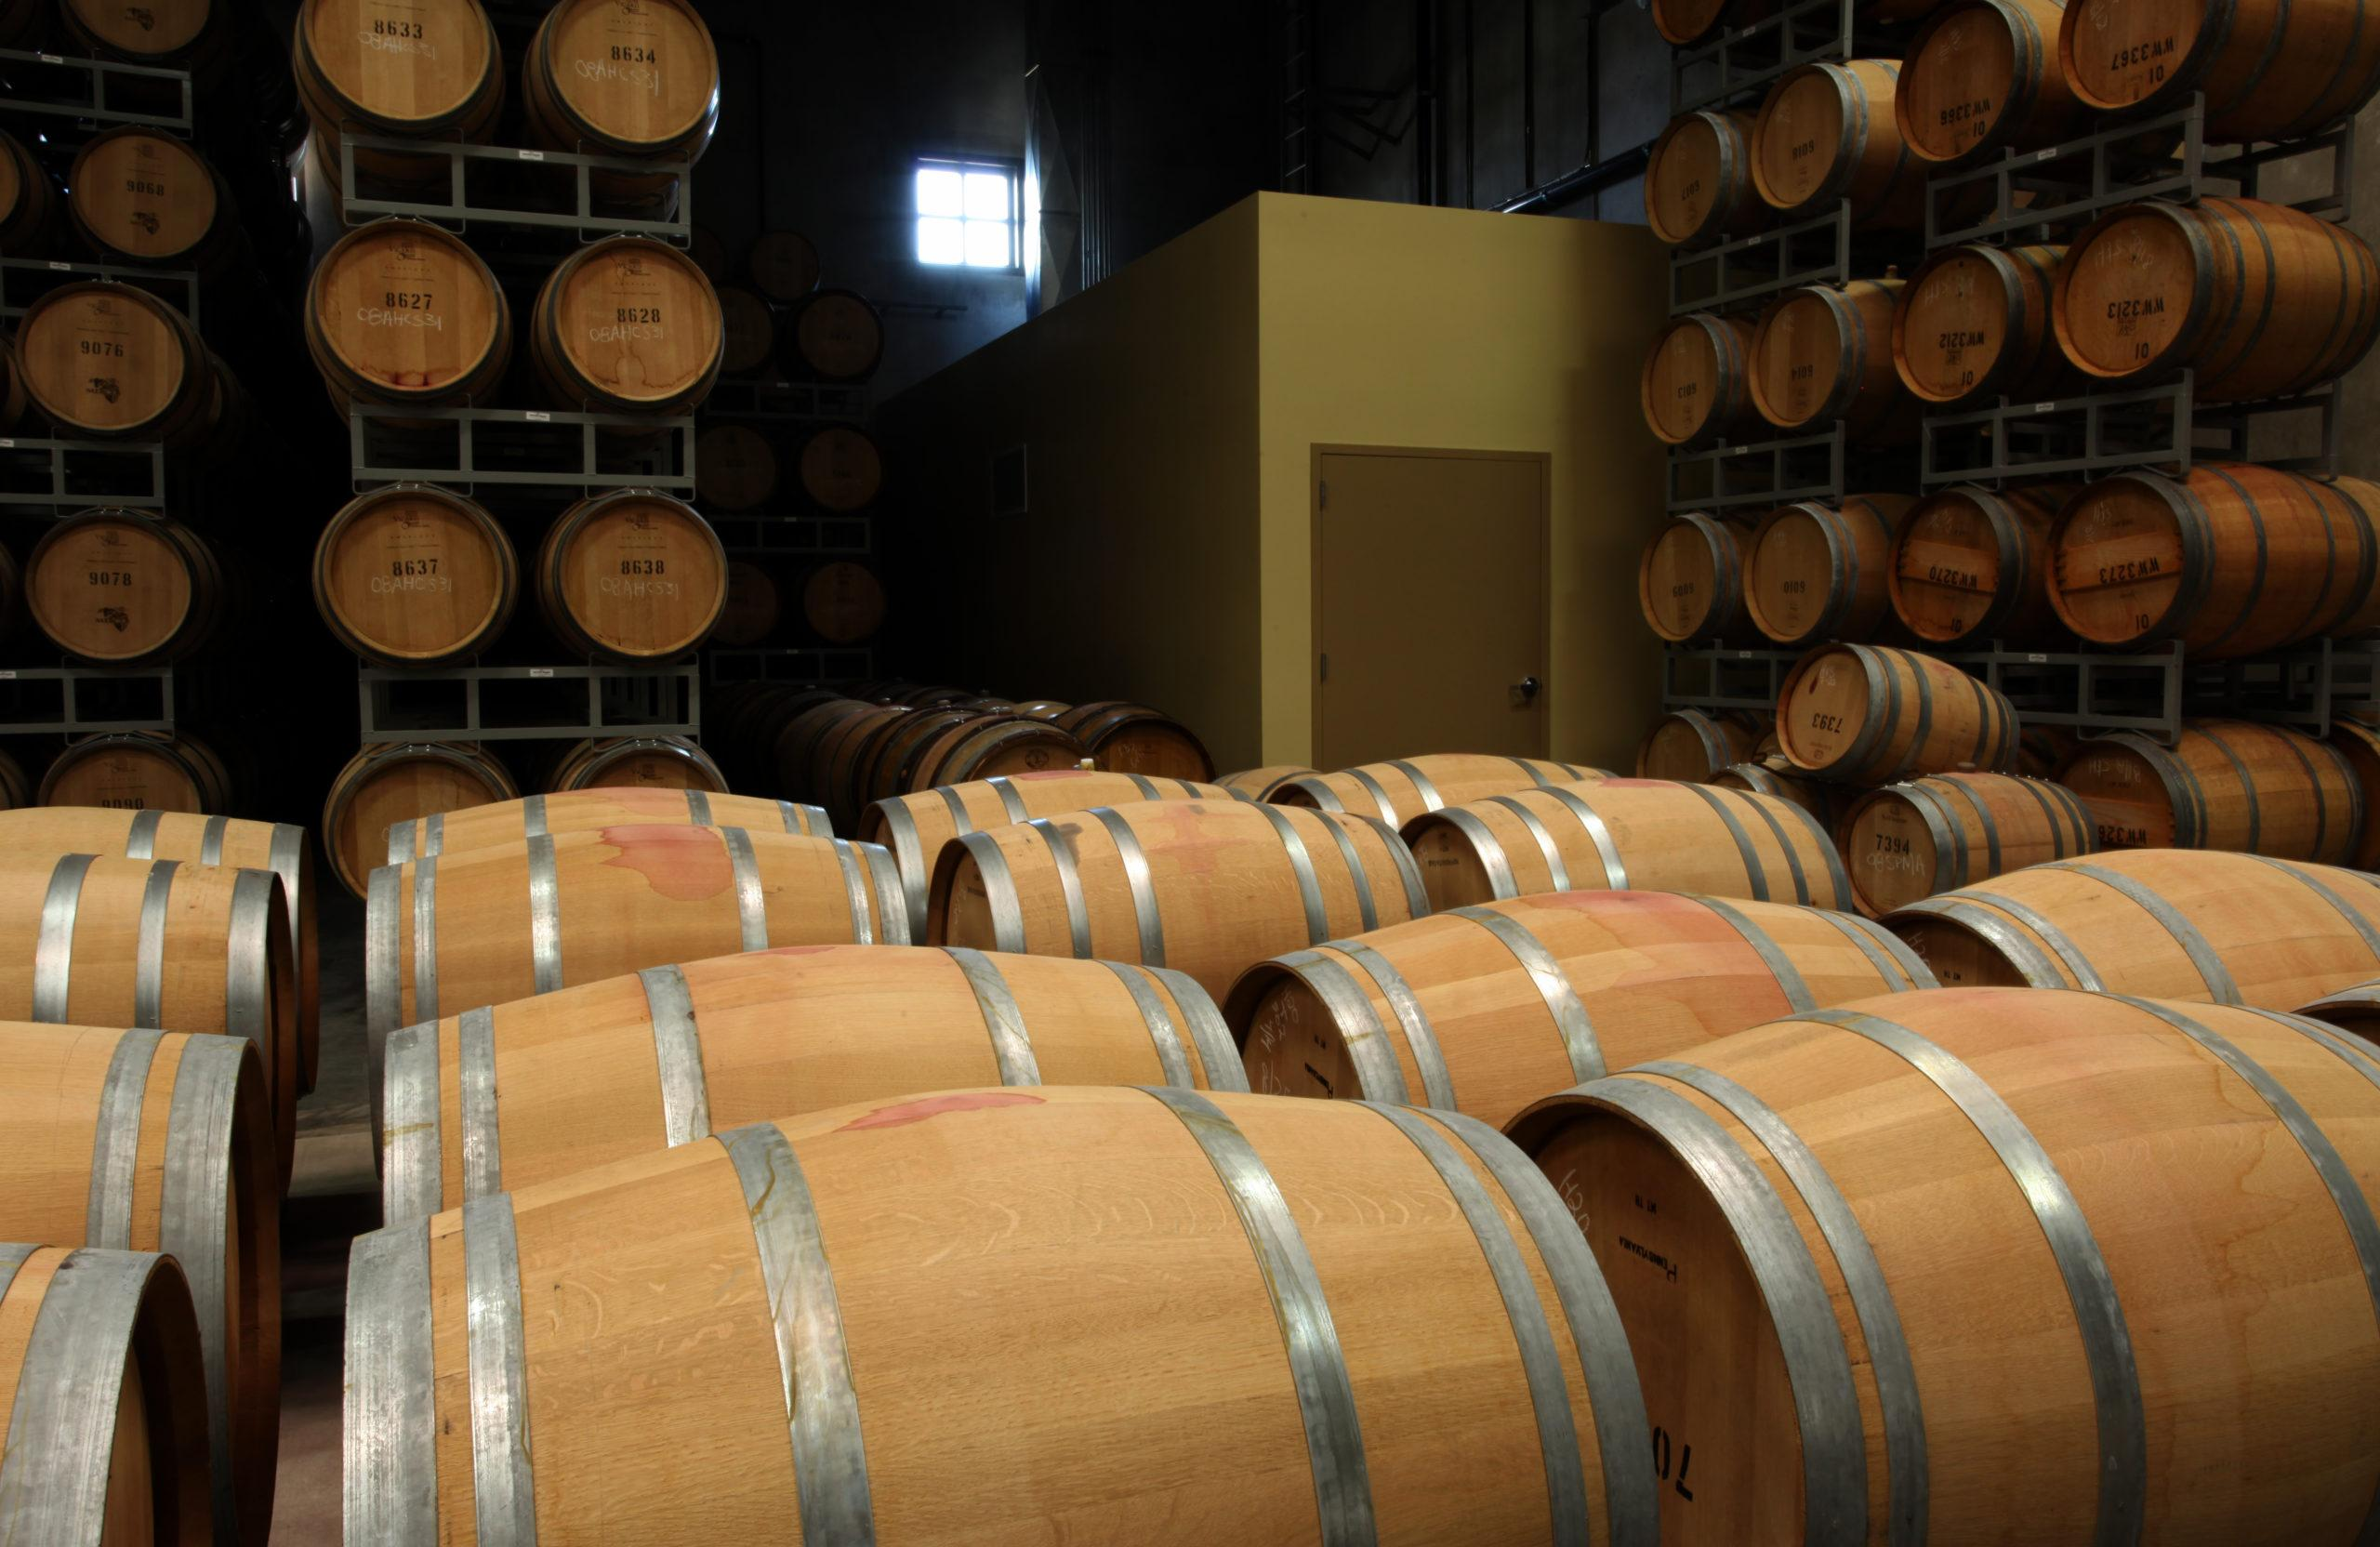 Room with stacks of wine barrels